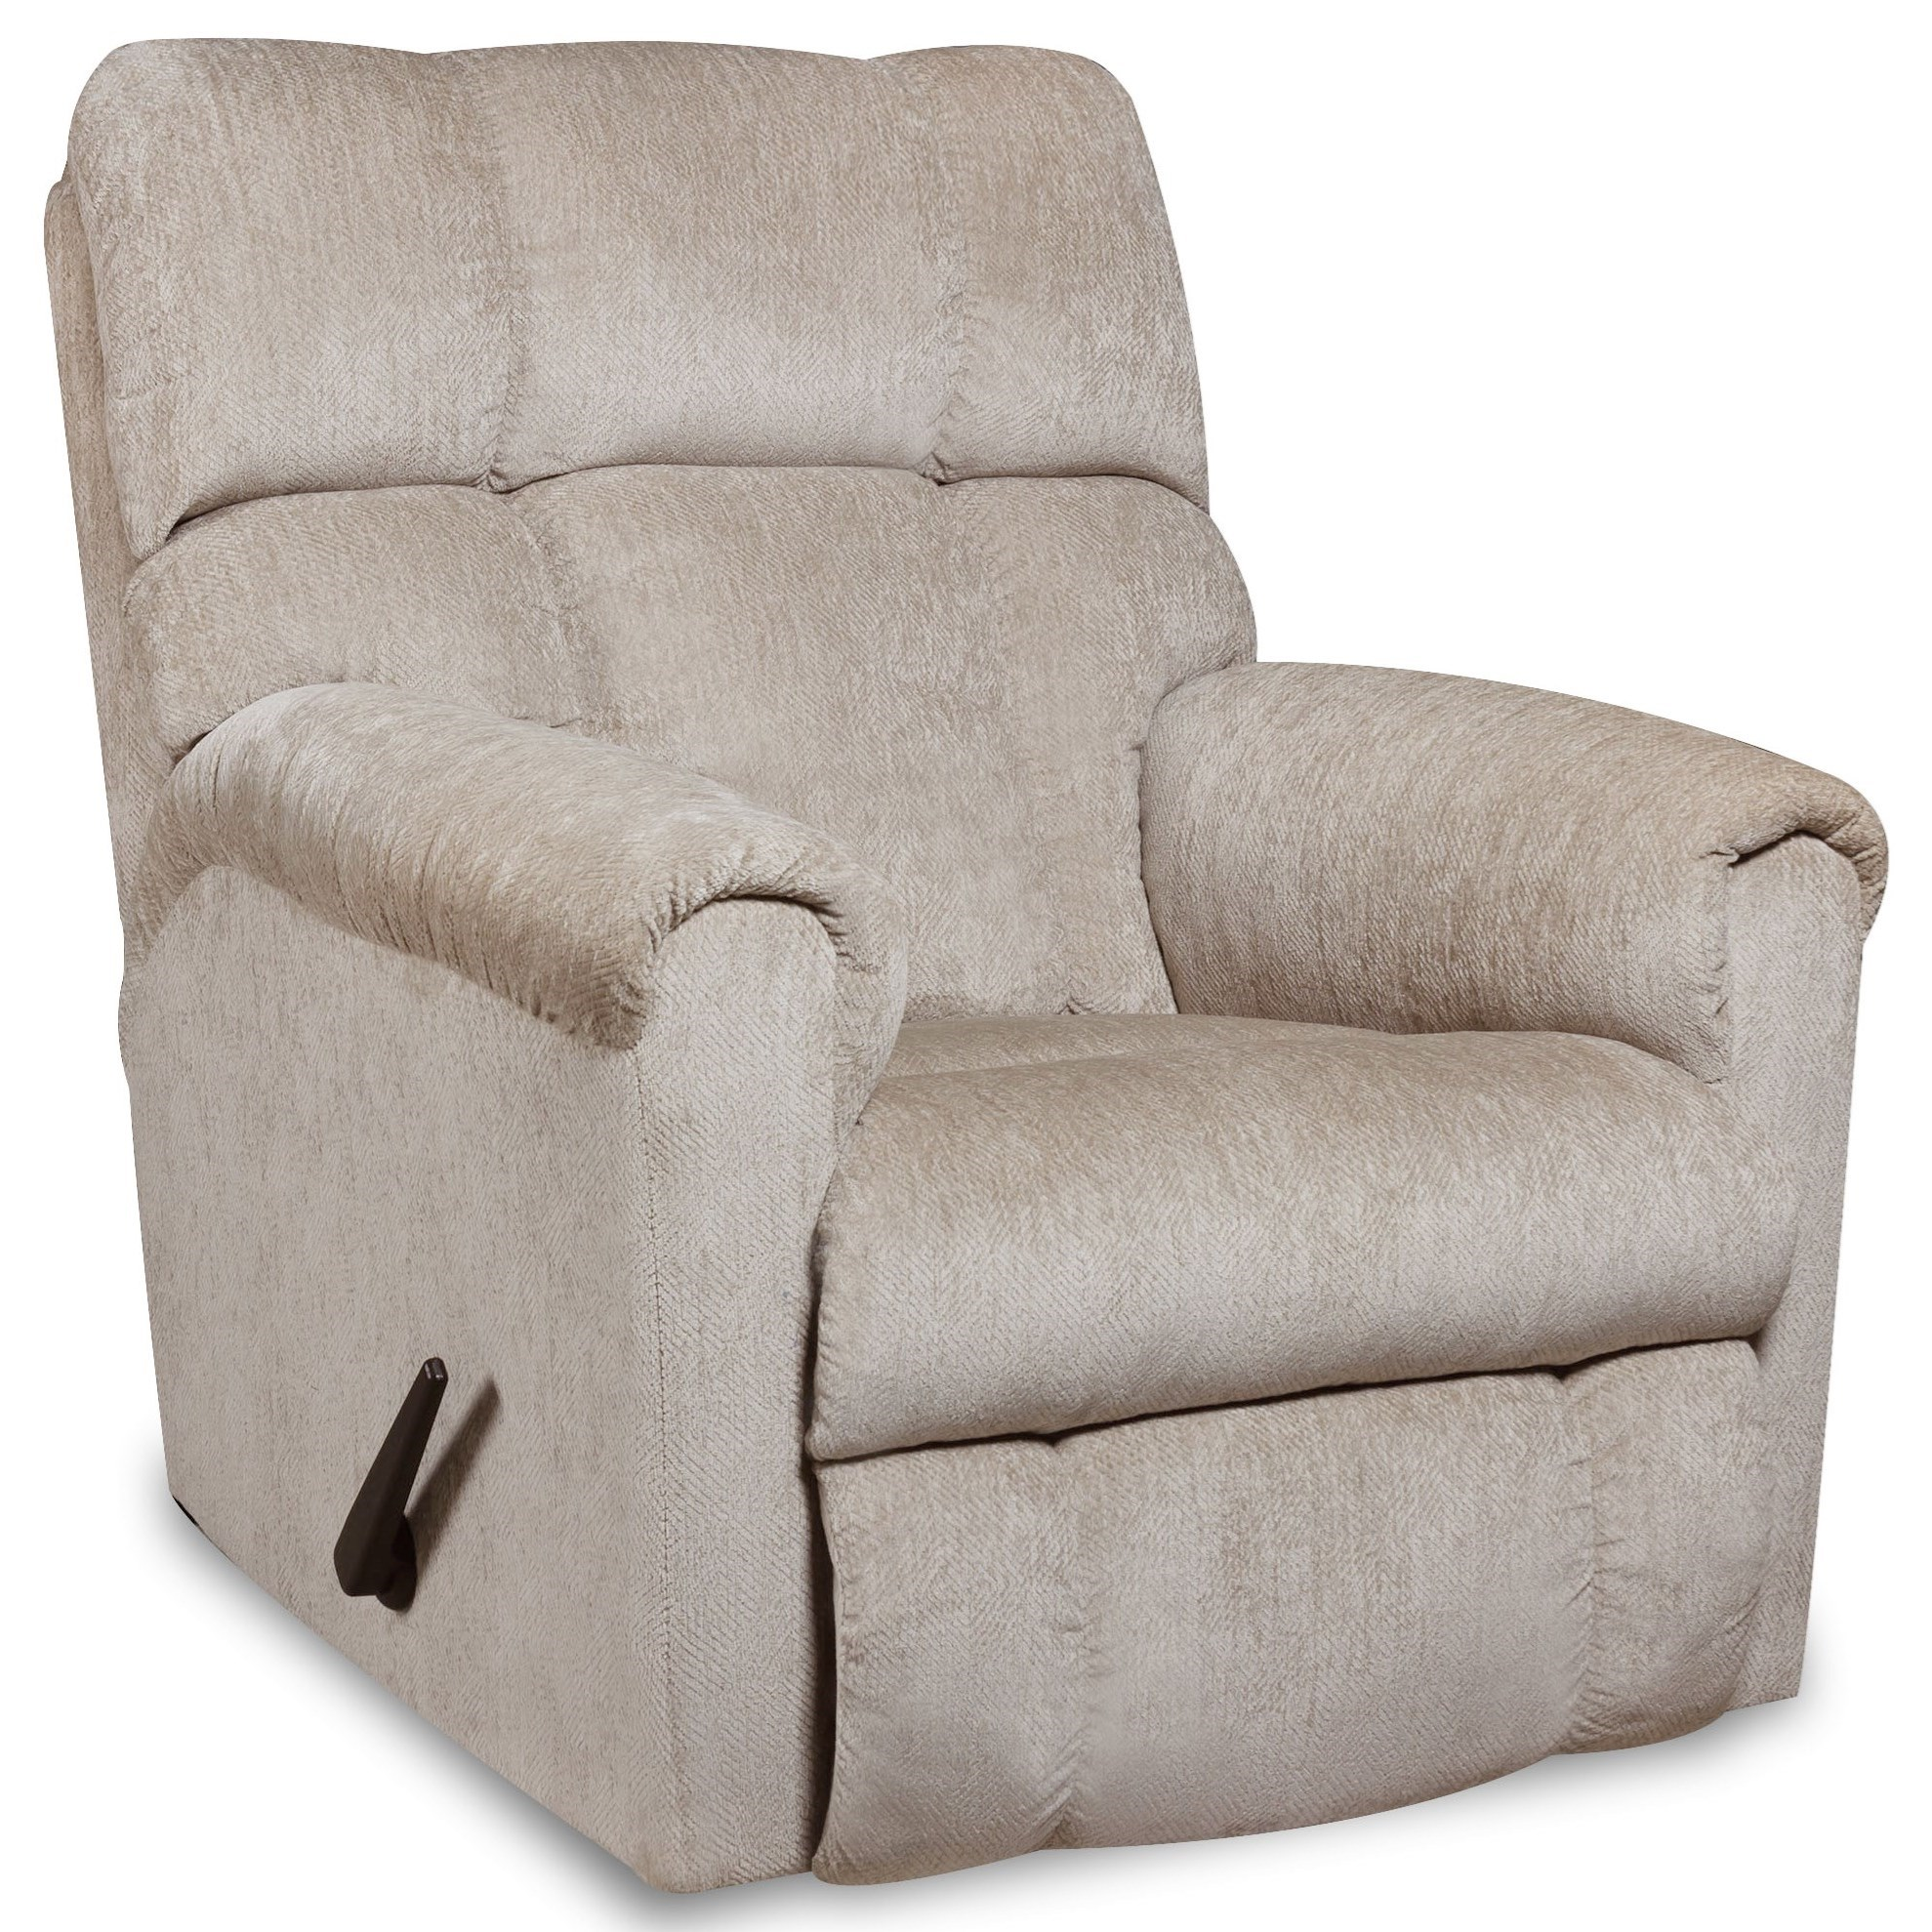 134 Chaise Recliner at Prime Brothers Furniture